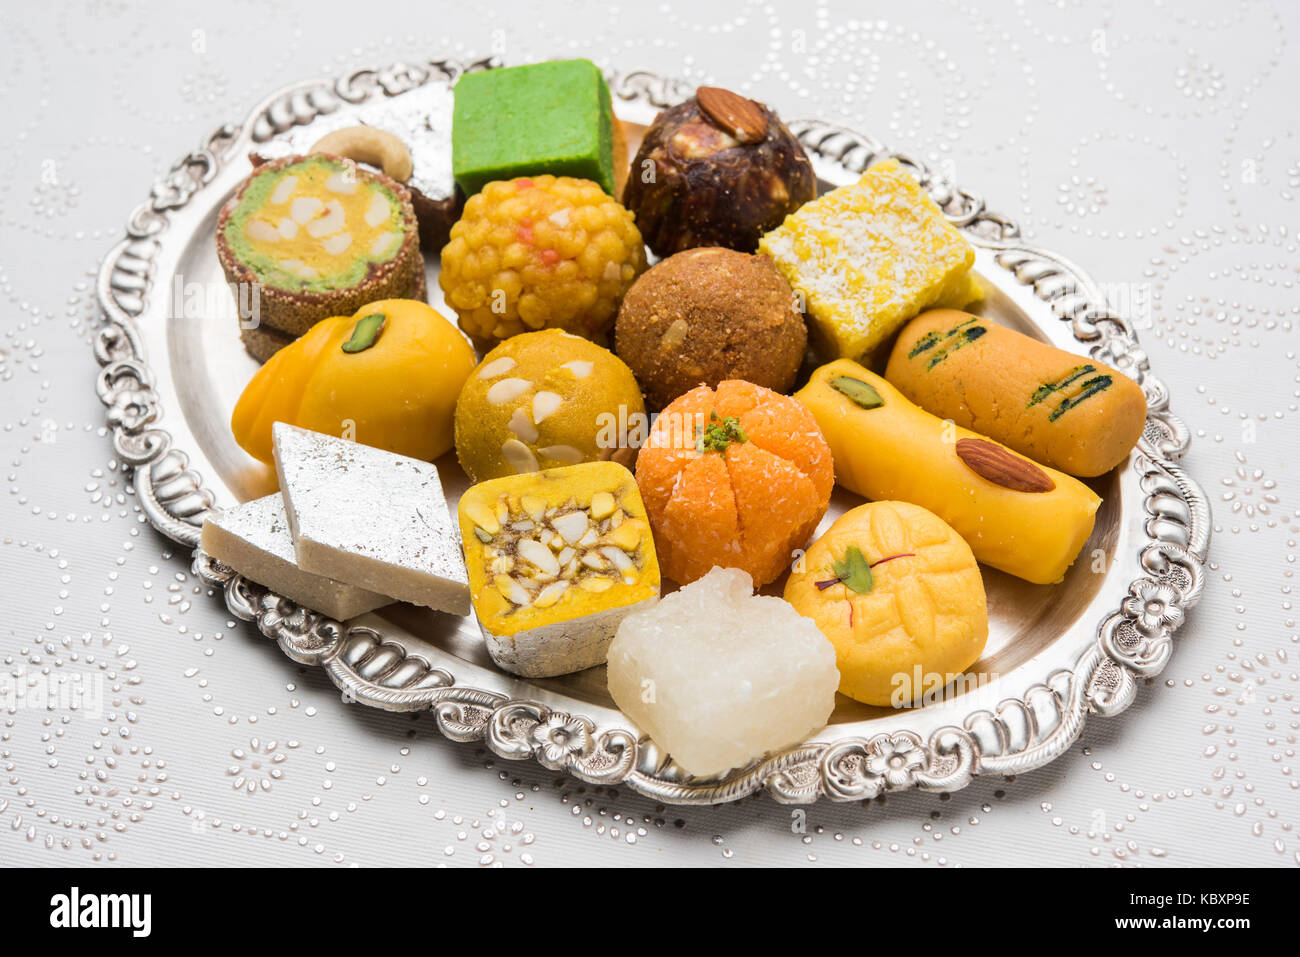 Stock Photo Of Indian Sweets Served In Silver Or Wooden Plate Stock Photo Alamy